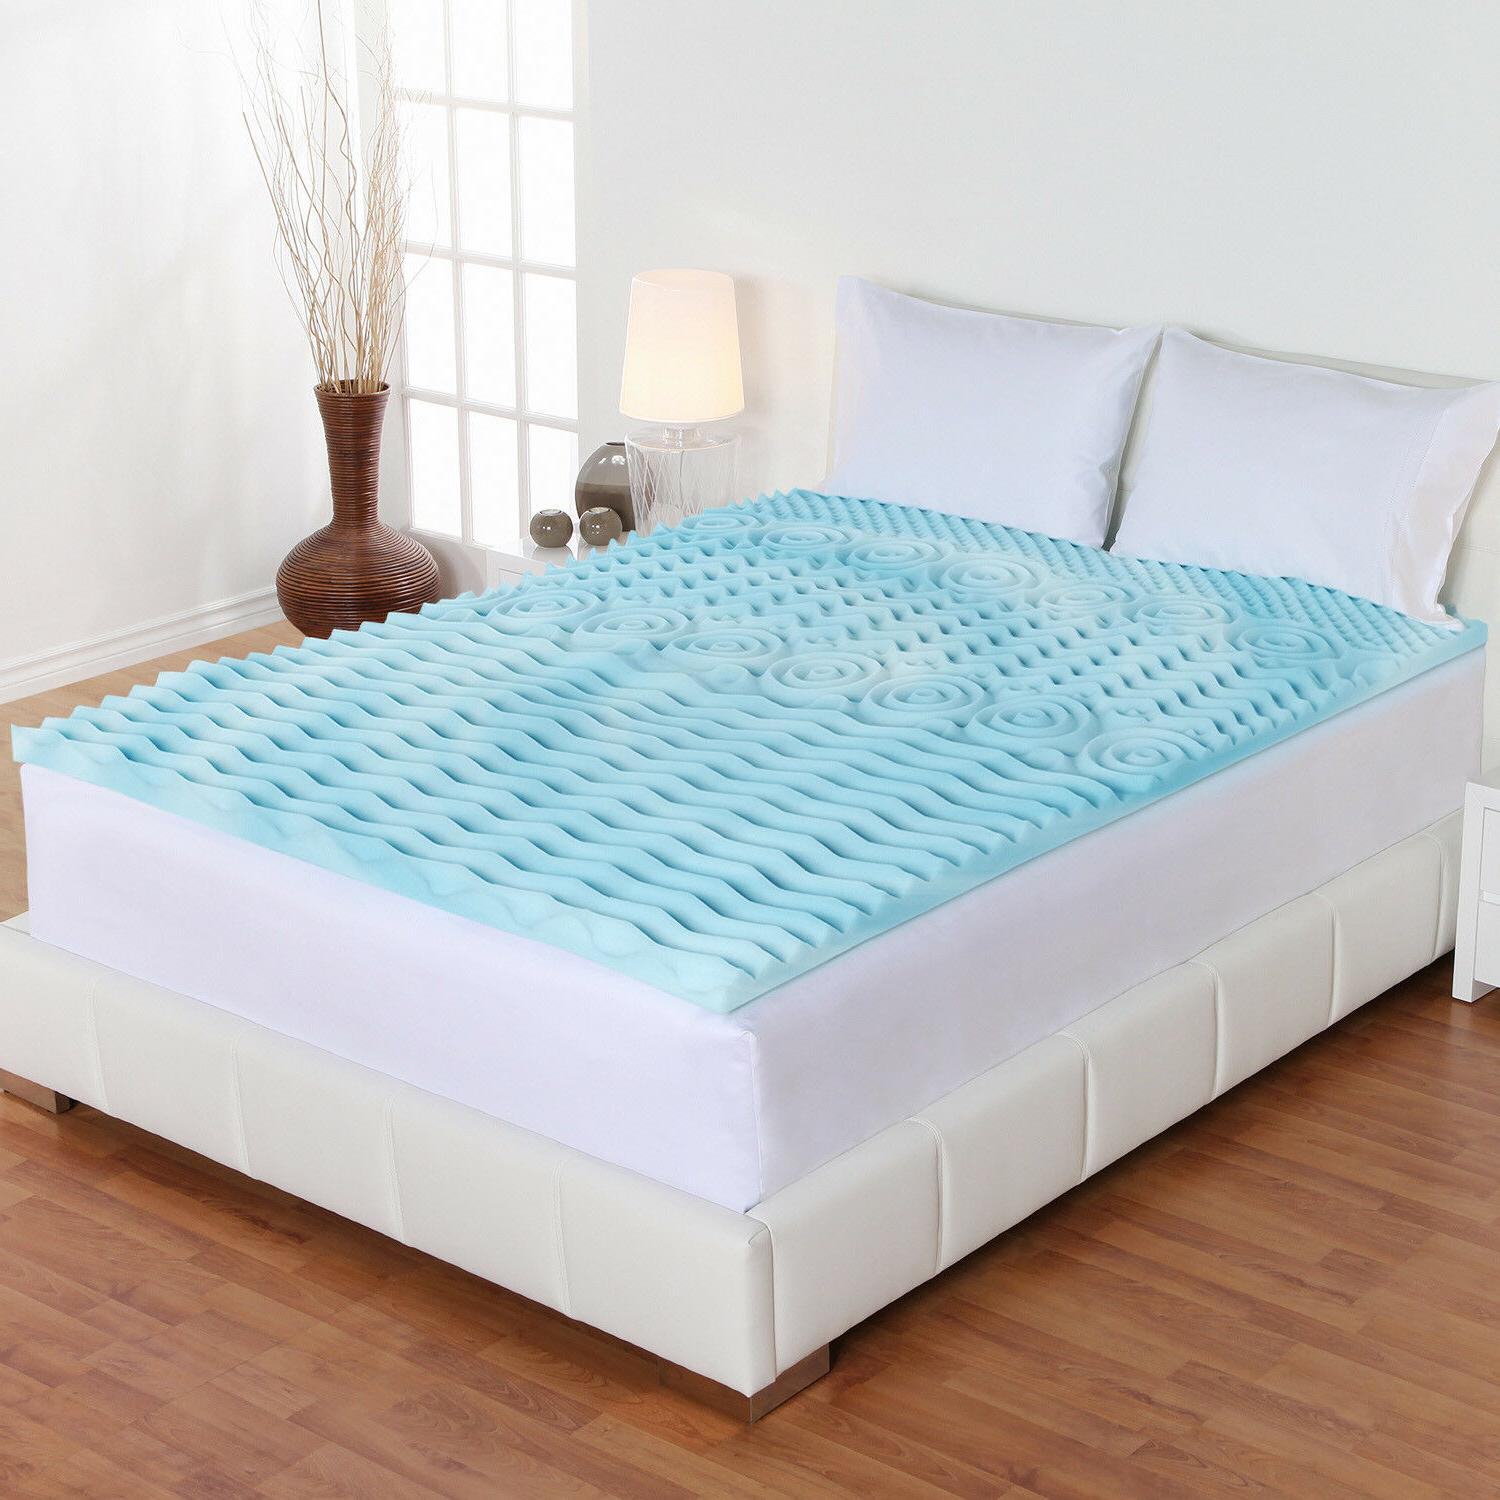 "Orthopedic Mattress Topper Foam 5 Zone 2"" Pad Comfort Sleep"